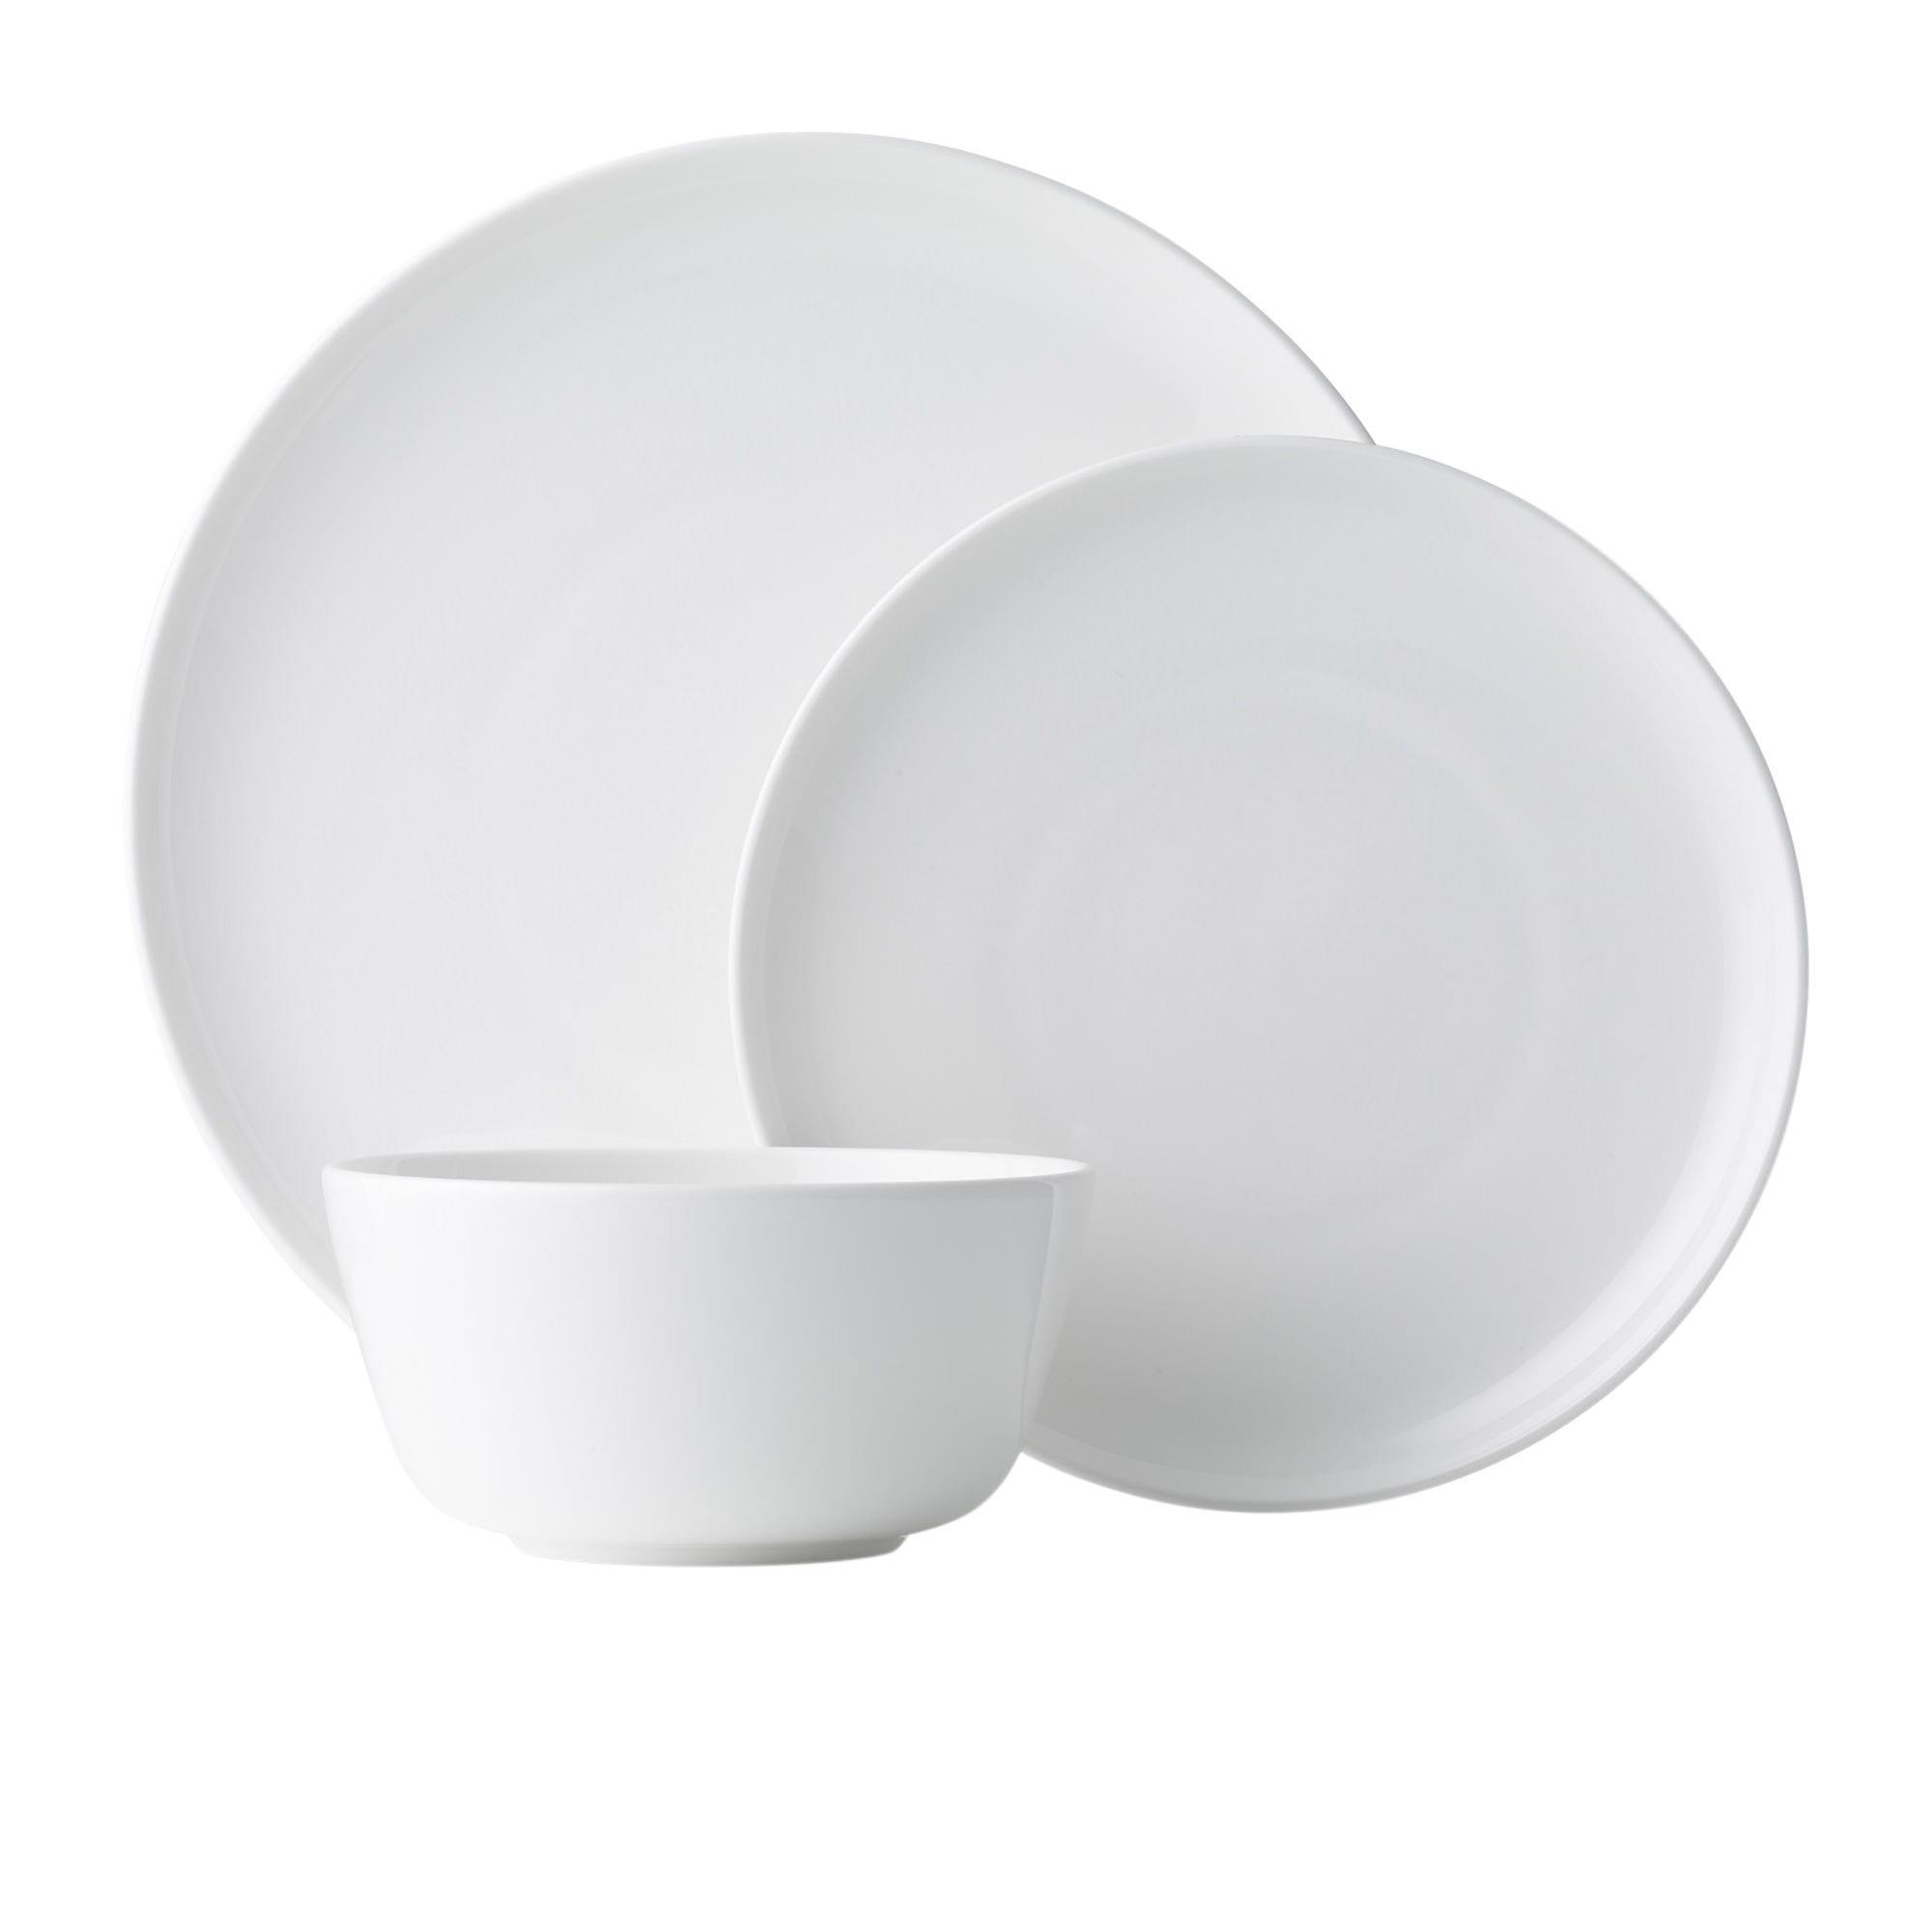 Noritake Marc Newson 12pc Dinner Set White